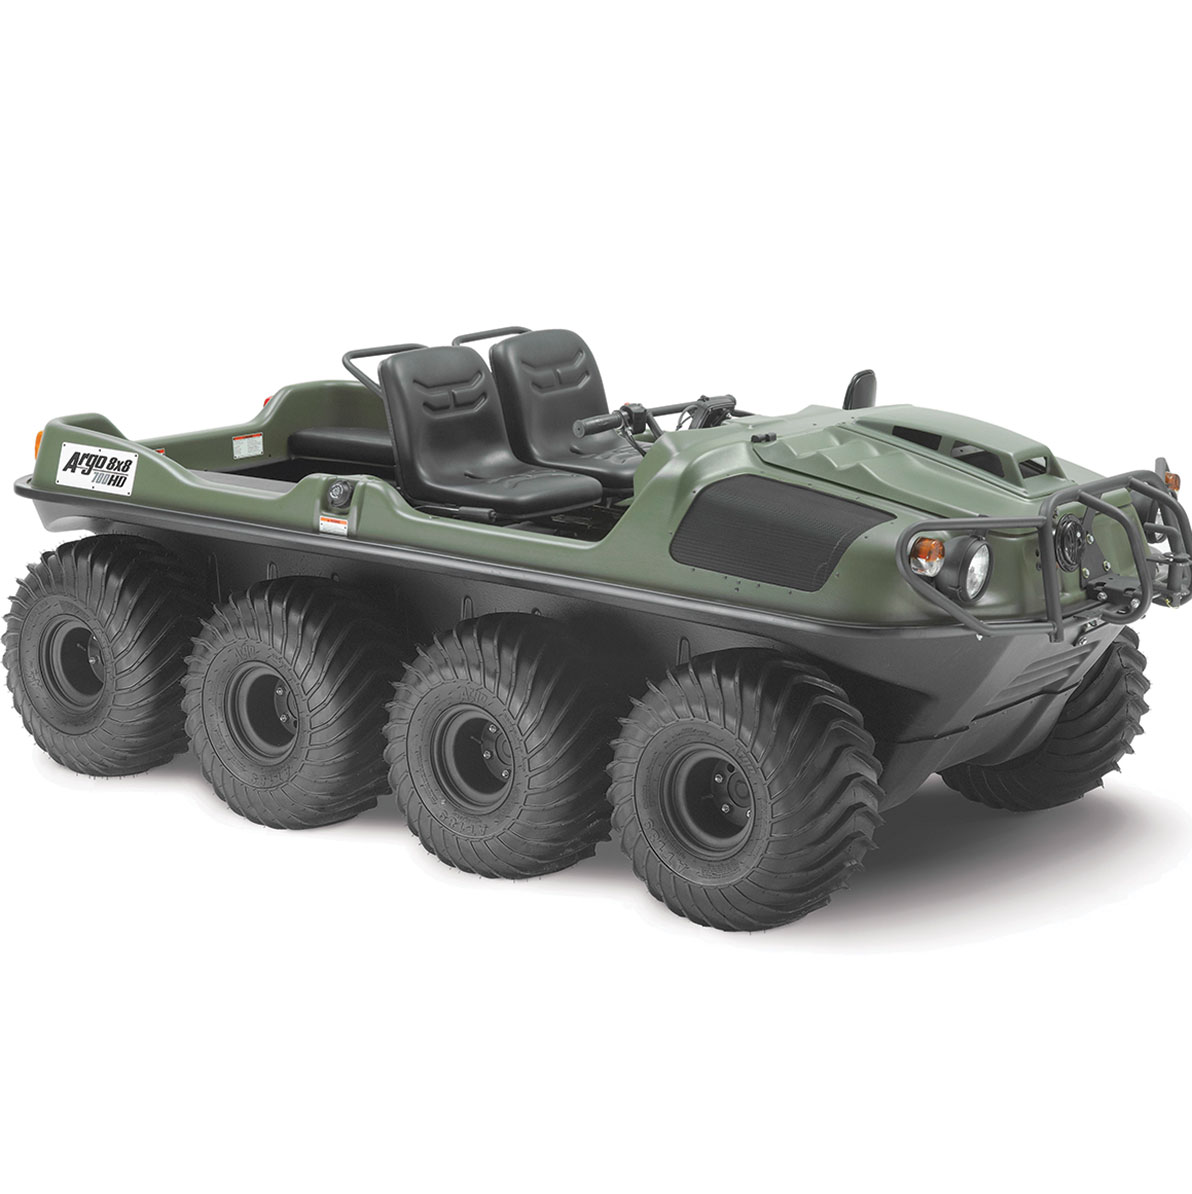 Agricultural Patrol may use amphibious all-terrain vehicles